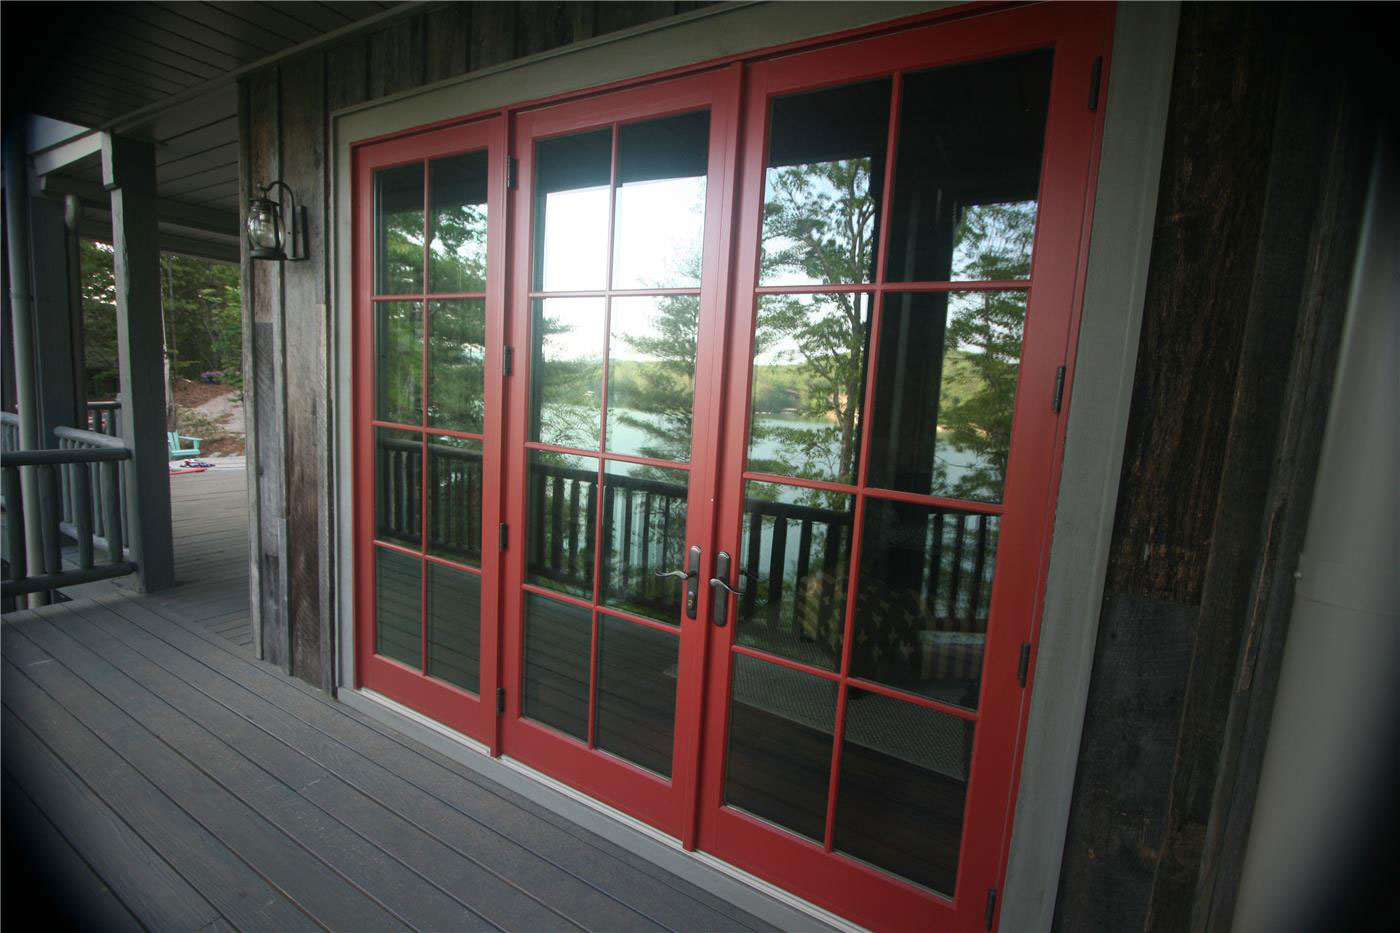 933 #743331 Sliding Doors French Patio Doors And Bi Fold Doors. pic Marvin Garage Doors 37011400